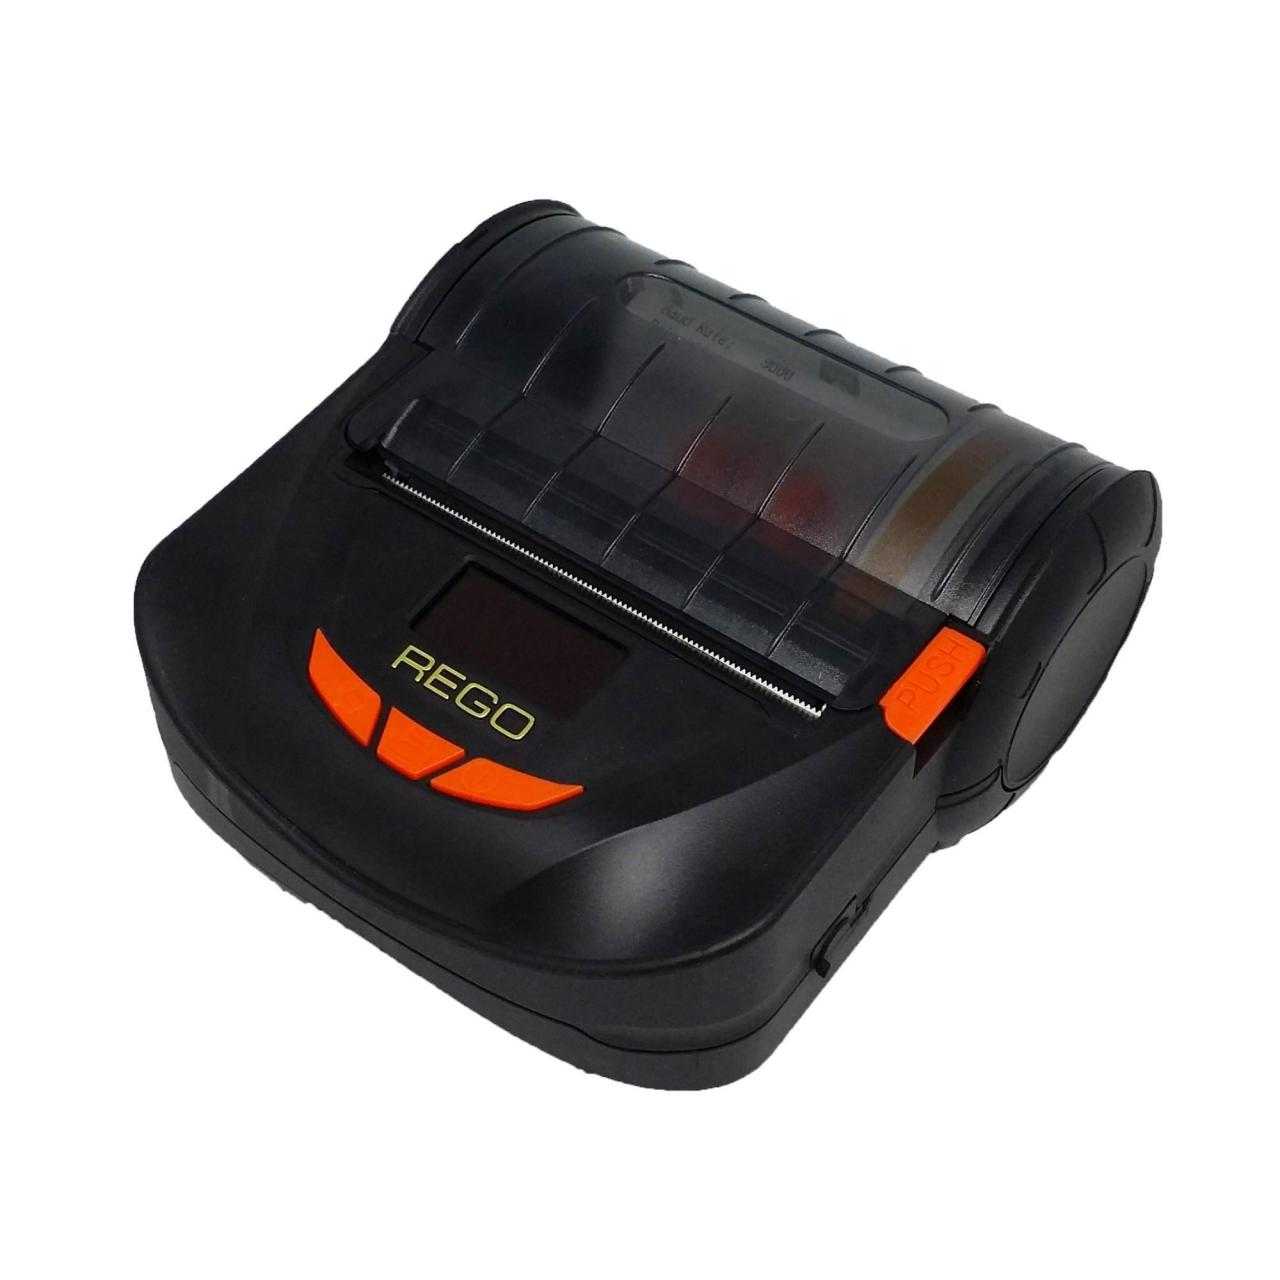 80mm Portable Thermal Label Printer Manufactures